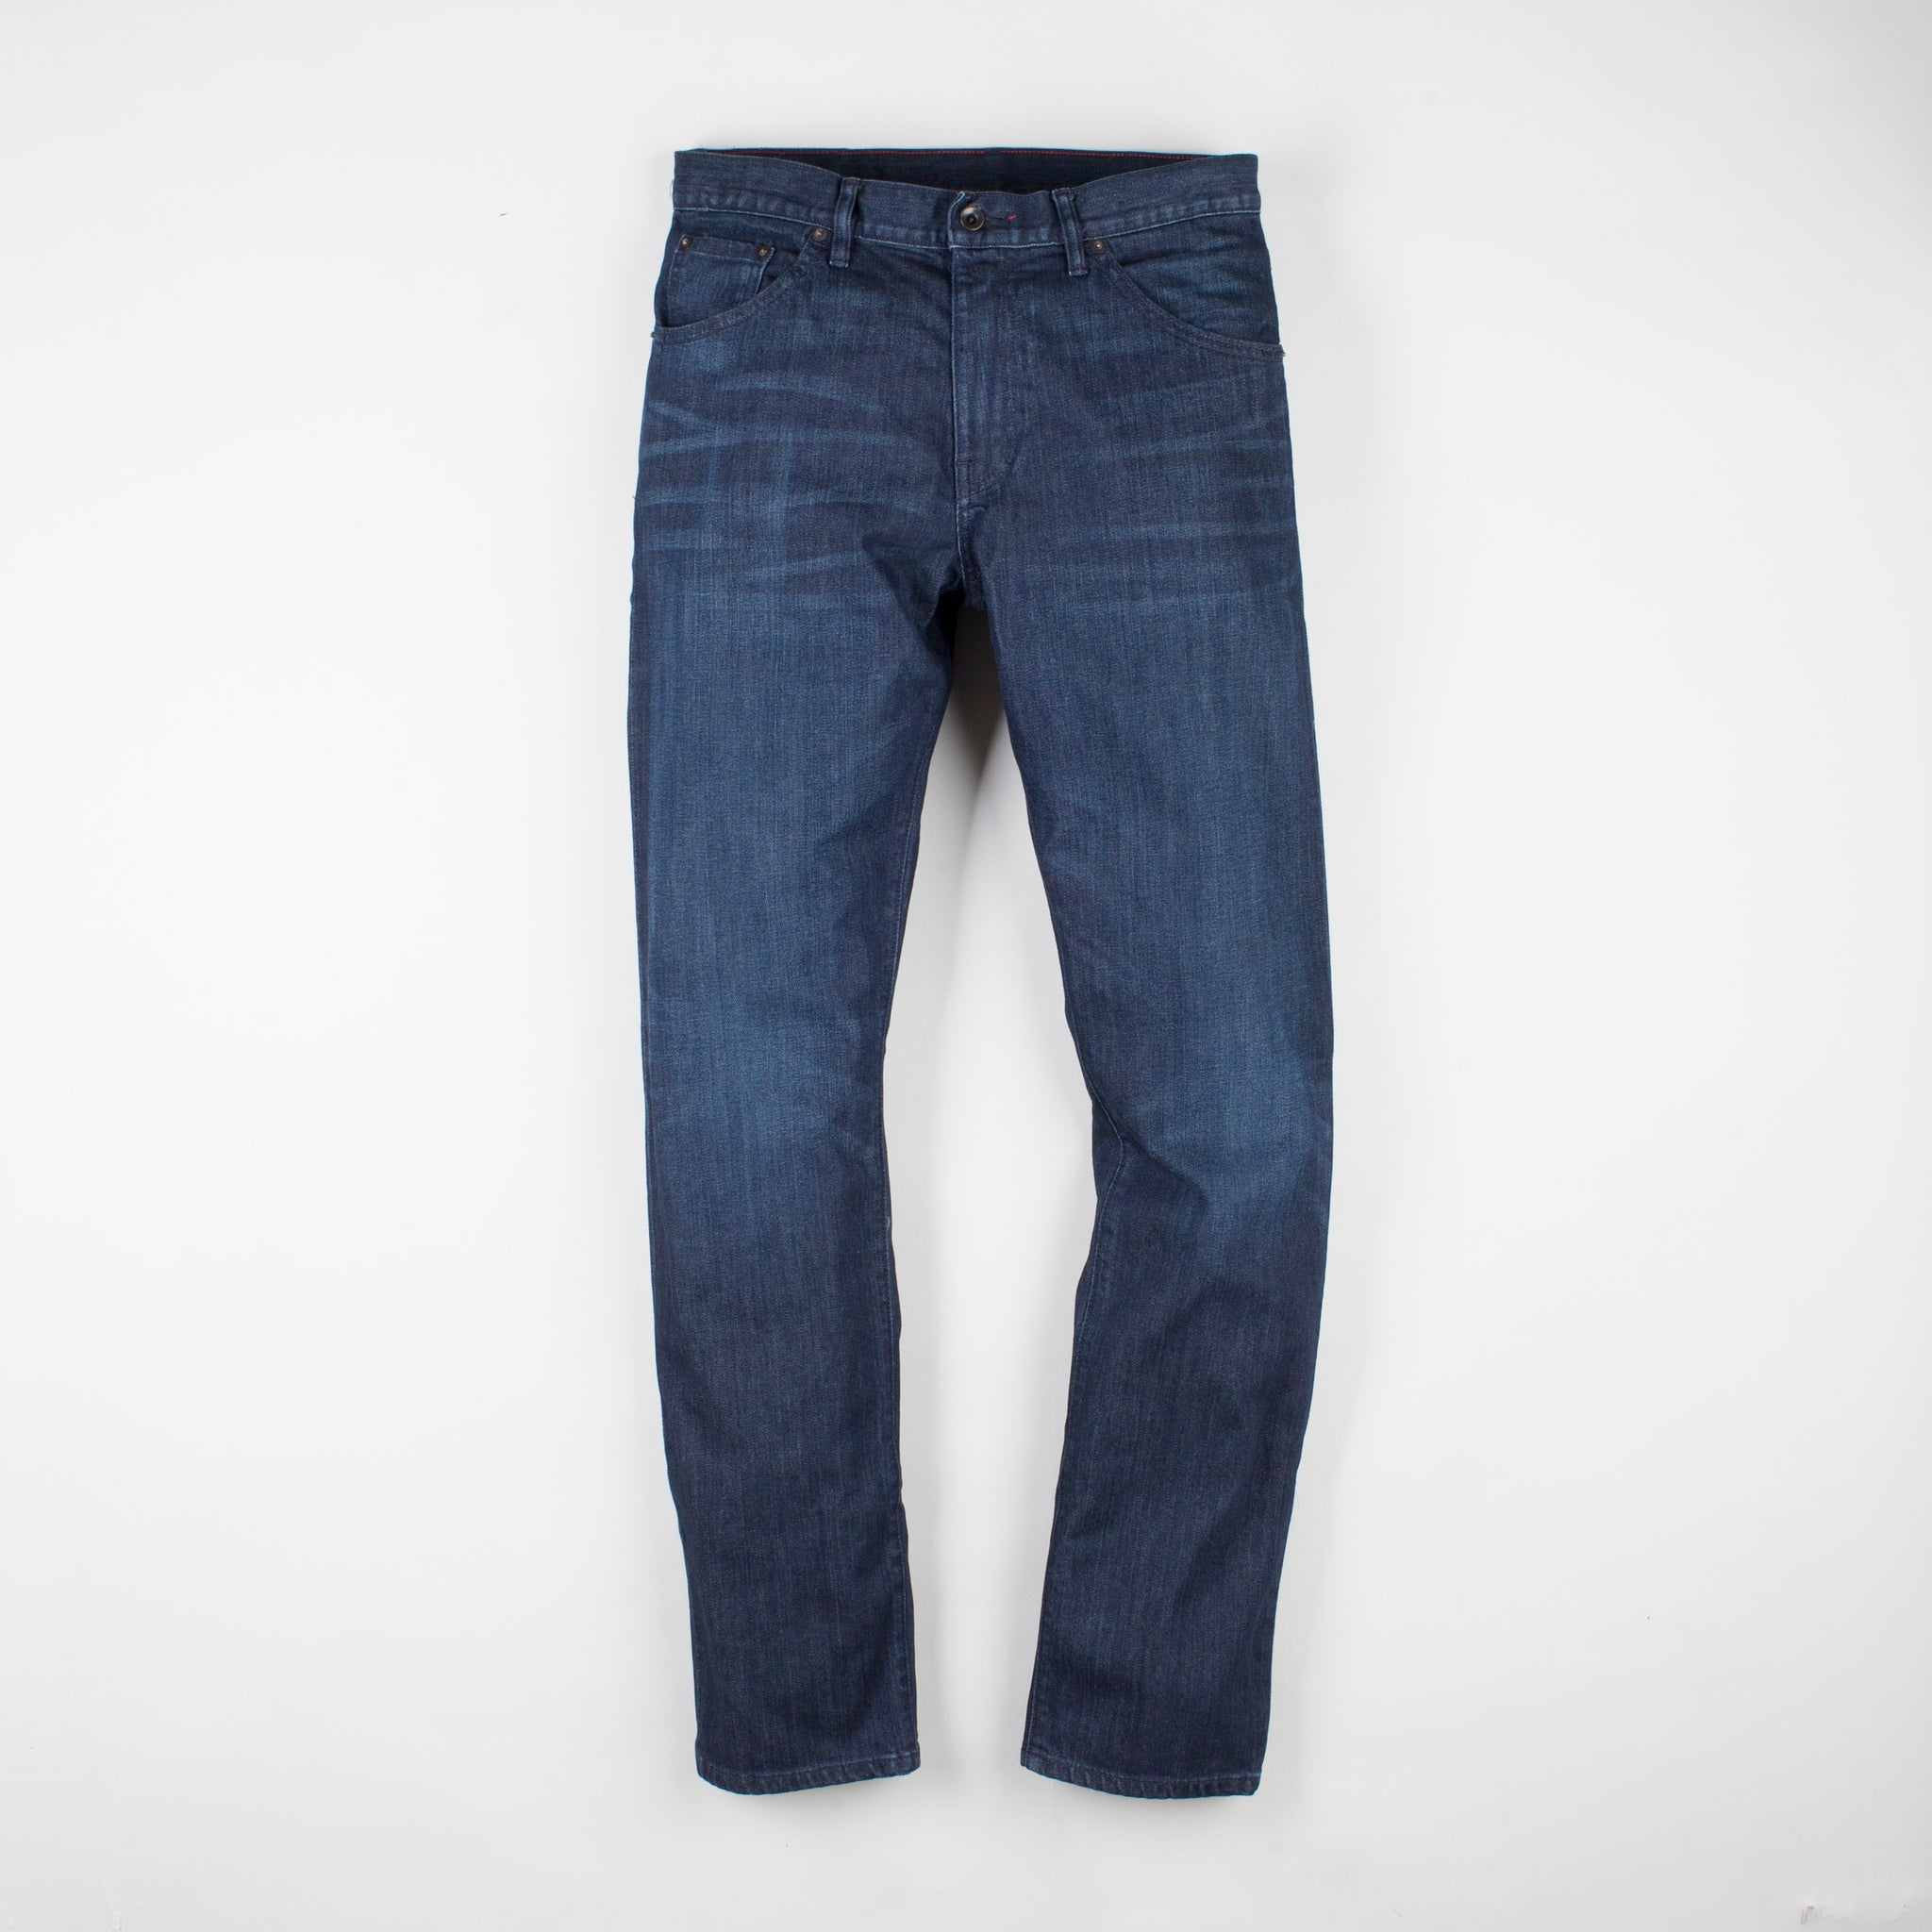 angle: jasper  Raleigh Denim Workshop Alexander work fit men's jeans in dark jasper wash, front flat view